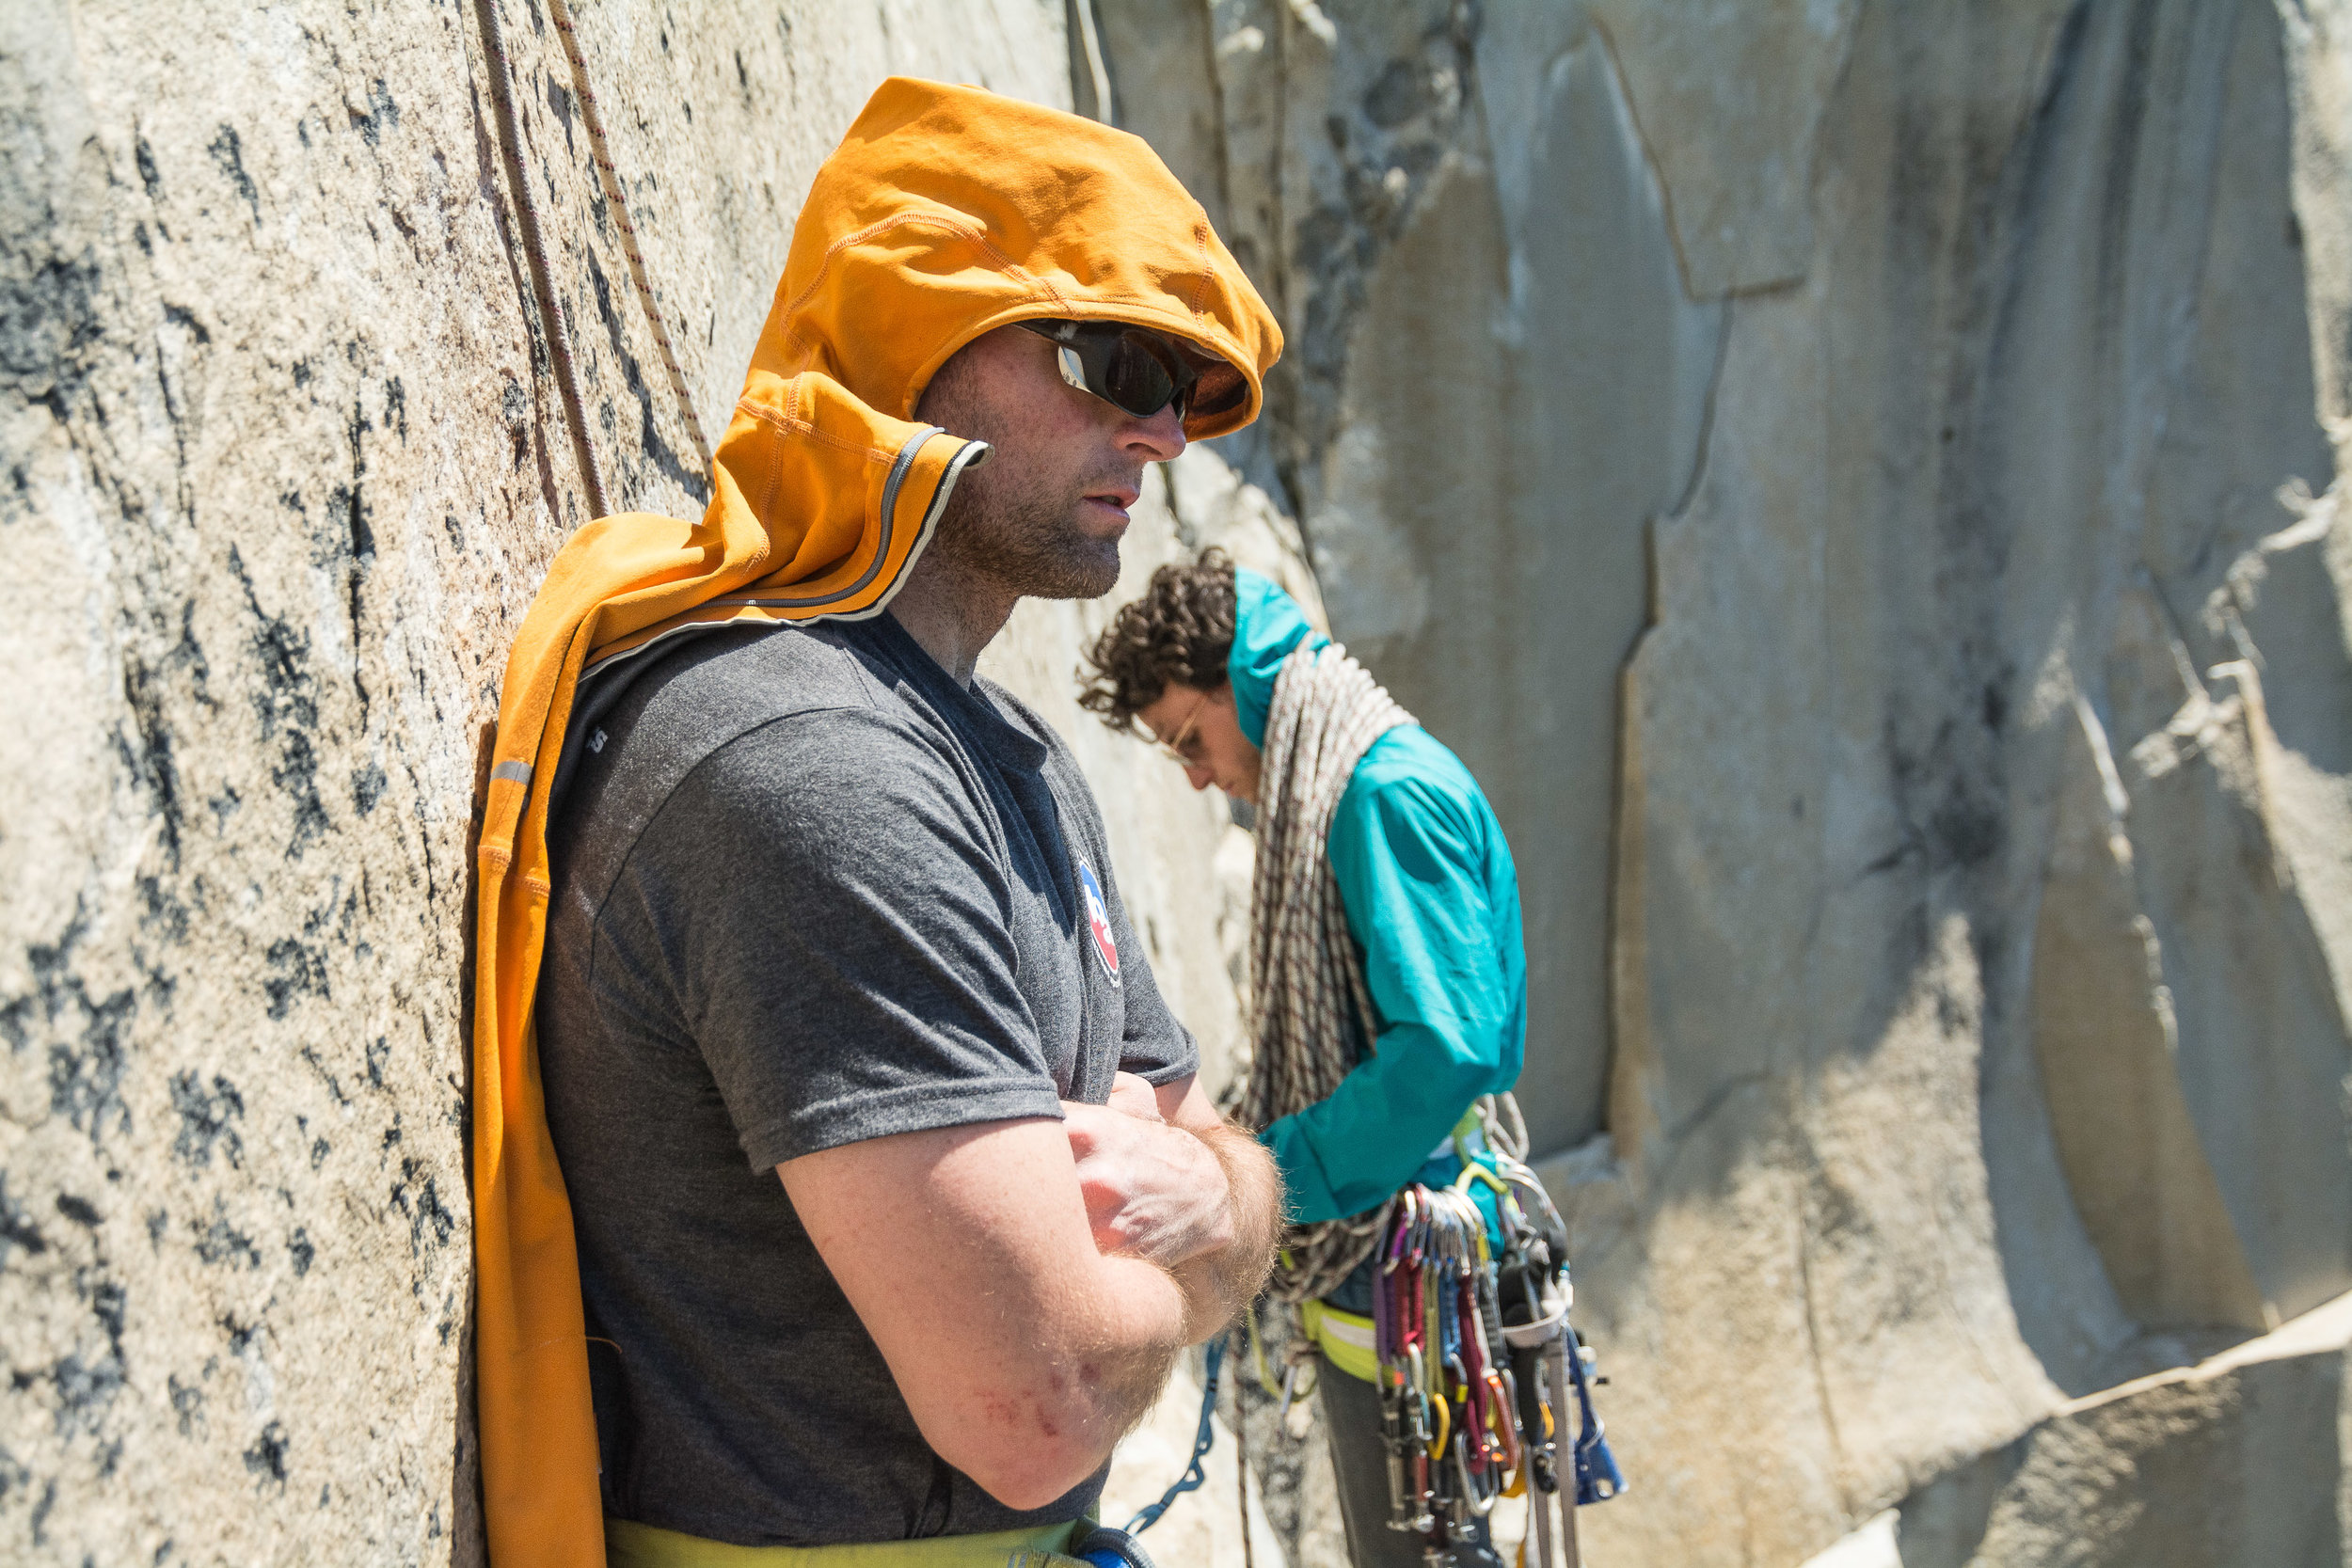 Trying to beat the midday heat, high on El Capitan.